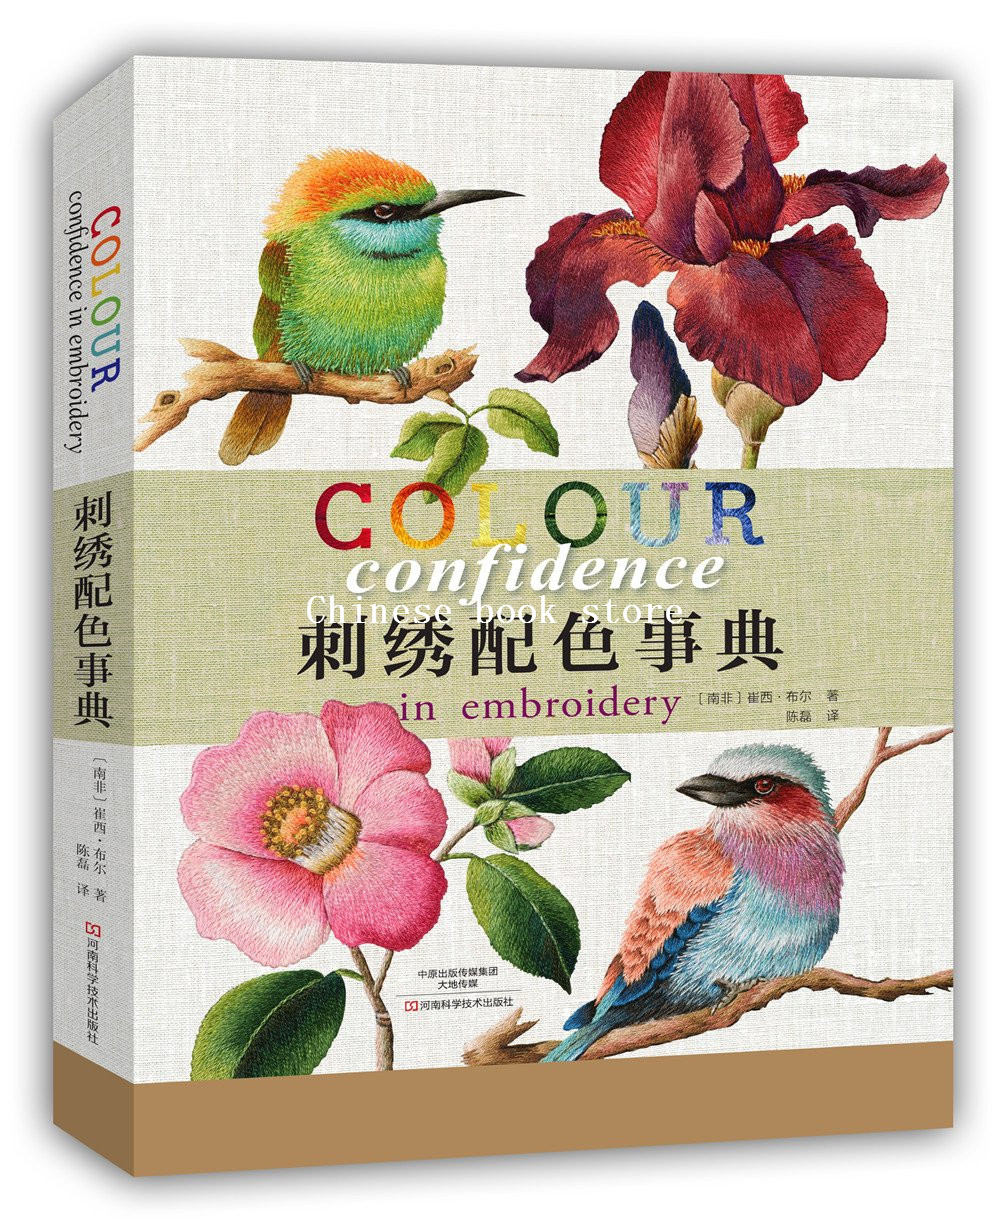 Embroidery craft book Colour Confidence in Embroidery by Trish Burr Chinese edition art book for advanced